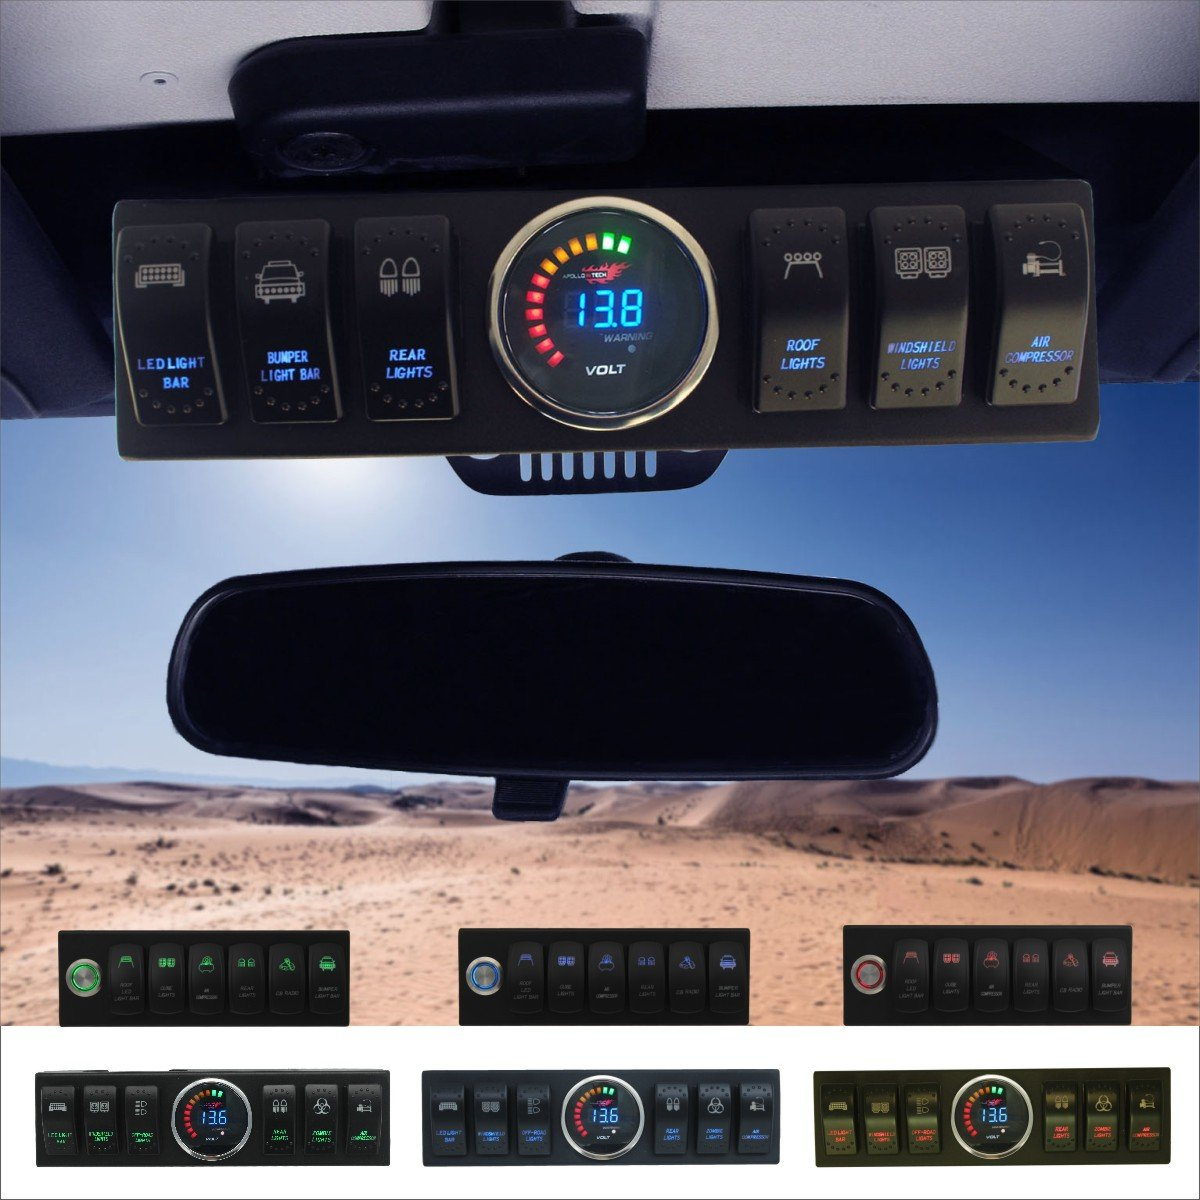 Apollointech Jeep Wrangler Jk Jku 2007 2018 Overhead 6 Auxiliary Light Wiring Guide Far Corners Switch Pod Panel With Control And Source System Blue Back Comes 10 Laser